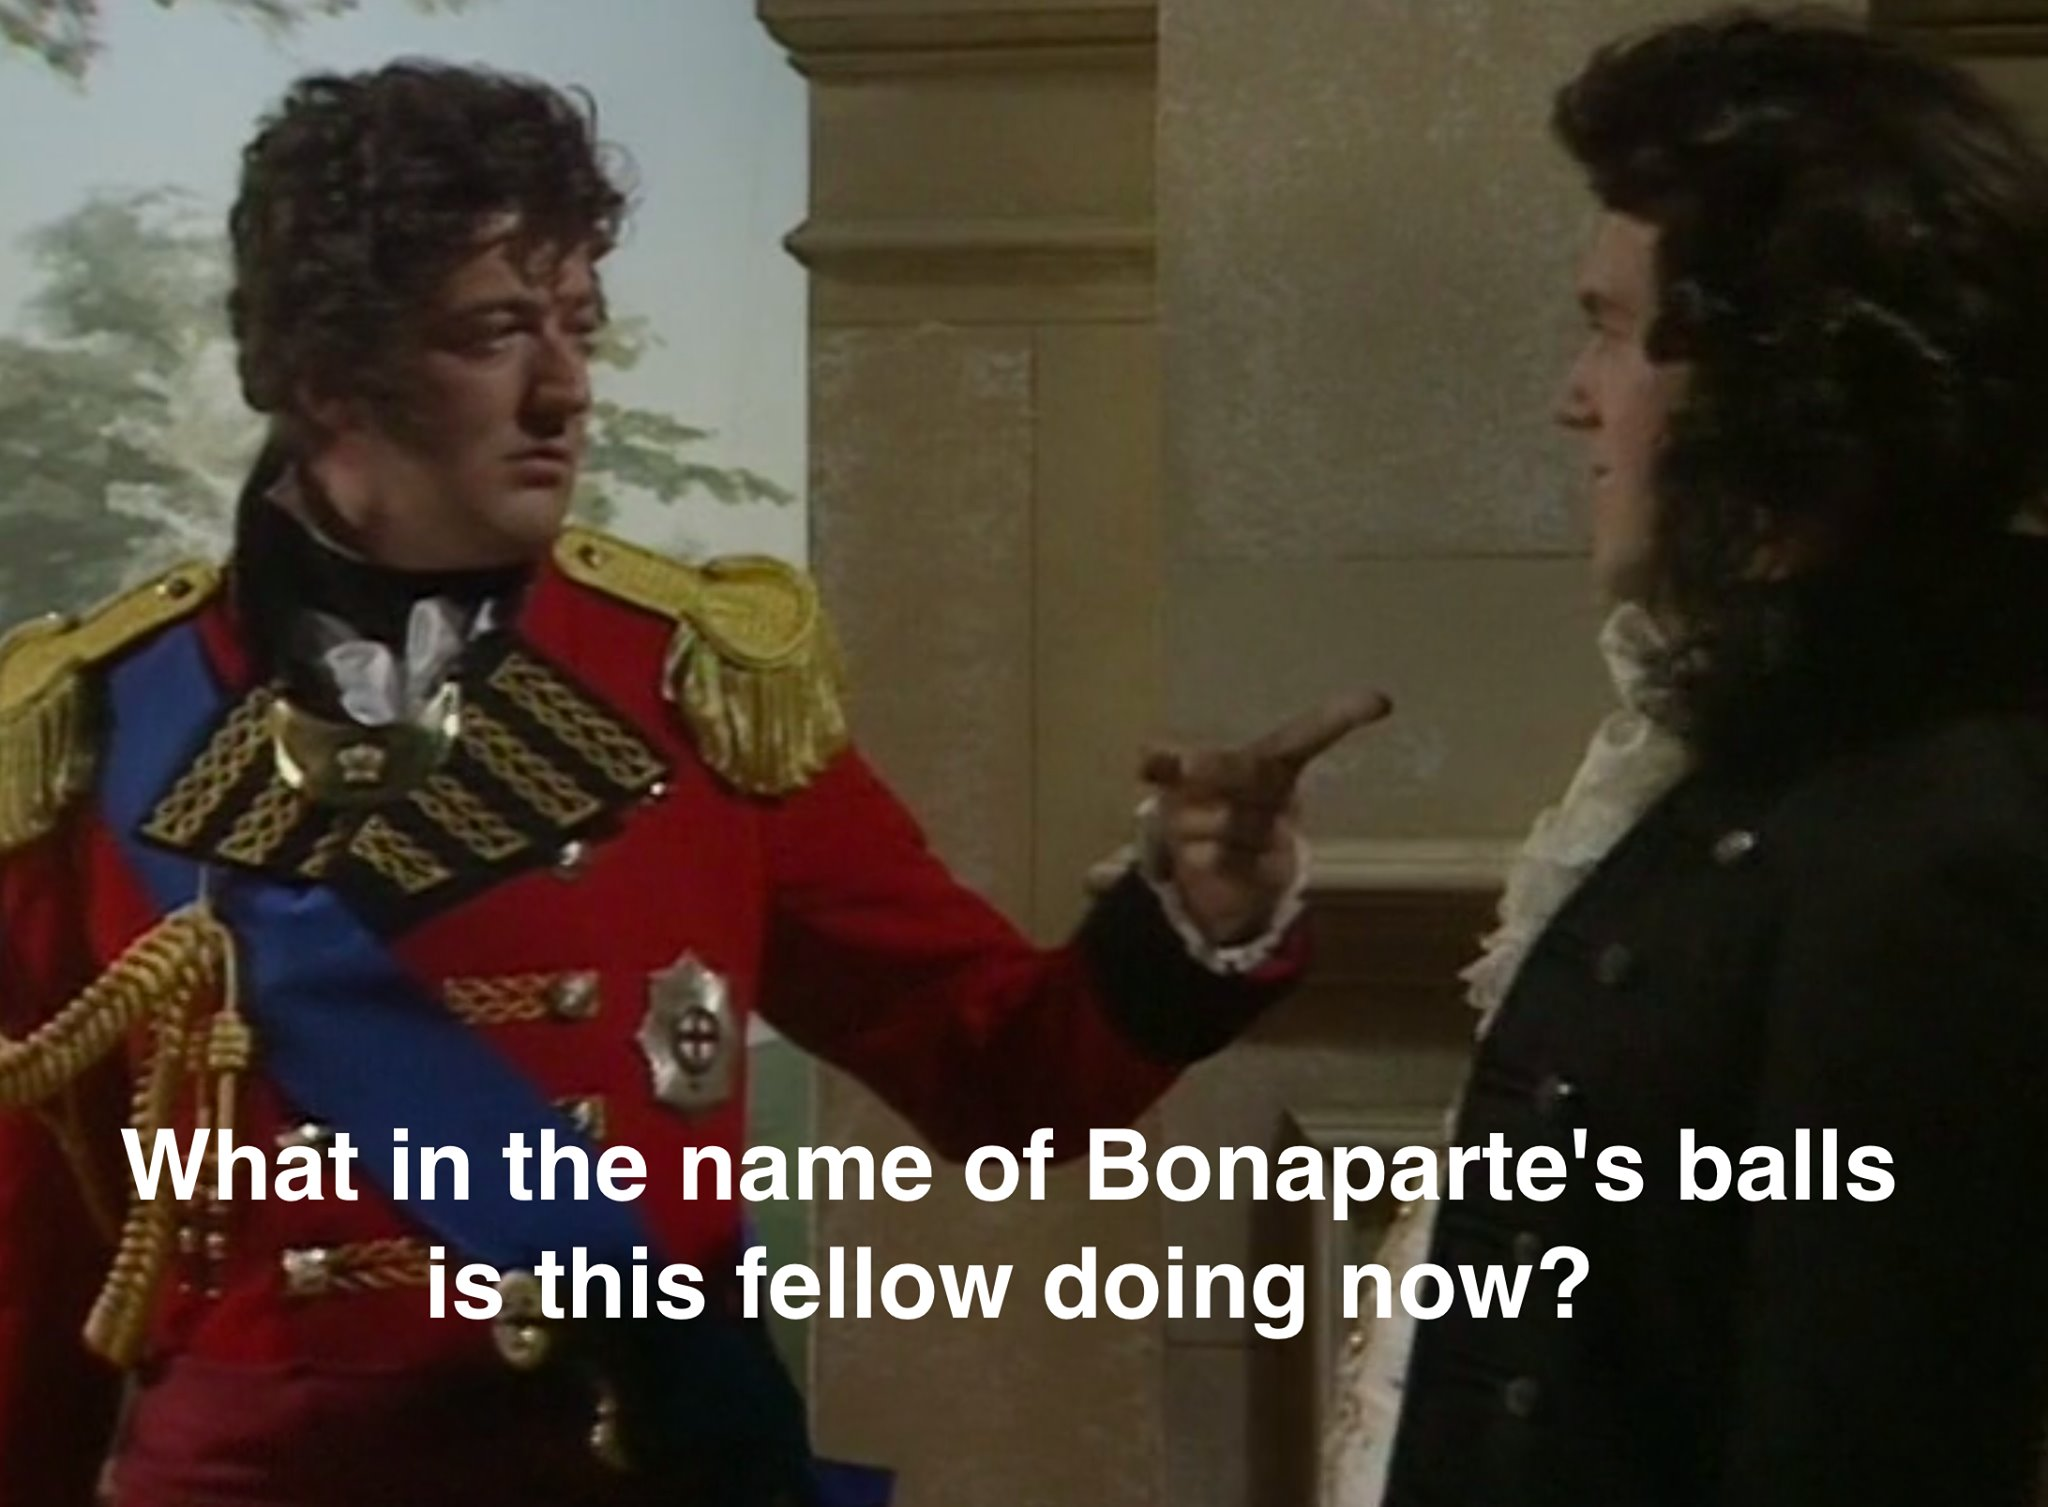 What in the name of Bonaparte's Balls is this fellow doing now - Stephen Fry Quote from Blackadder